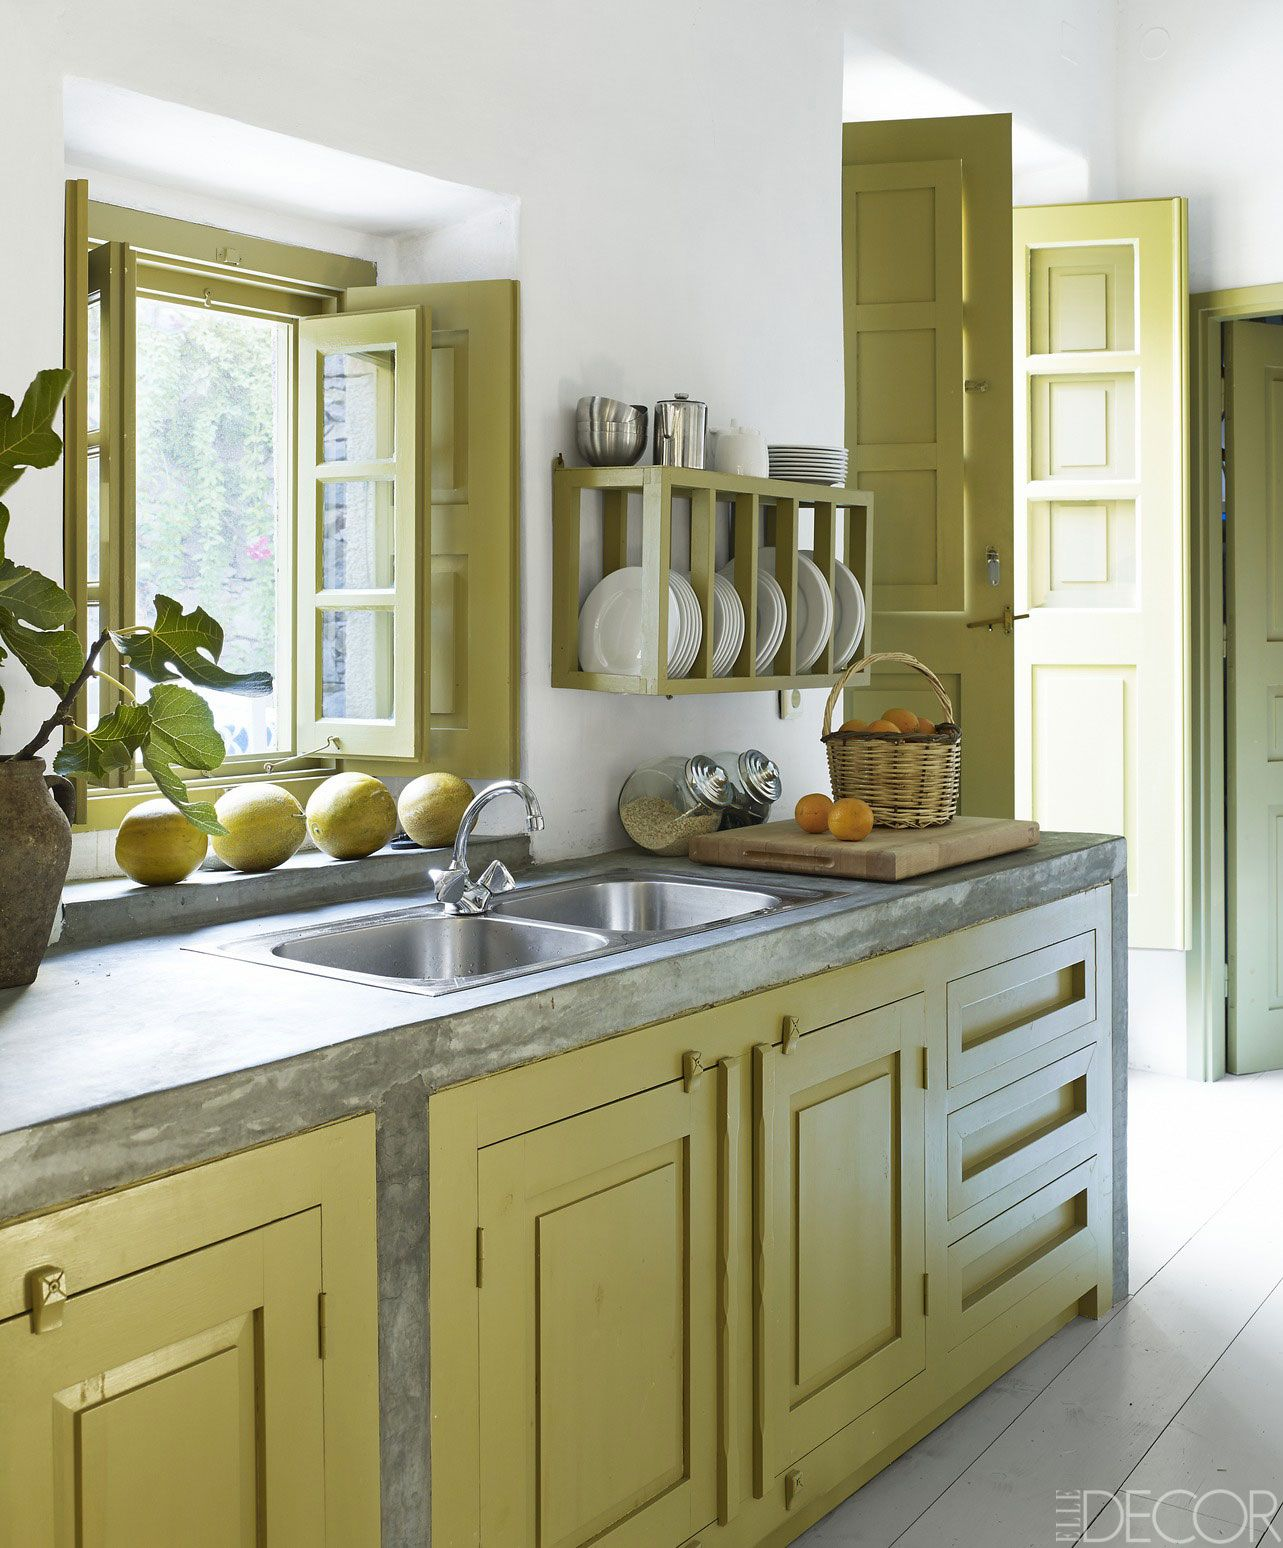 Simple Kitchen Designs Photo Gallery 50 small kitchen design ideas - decorating tiny kitchens